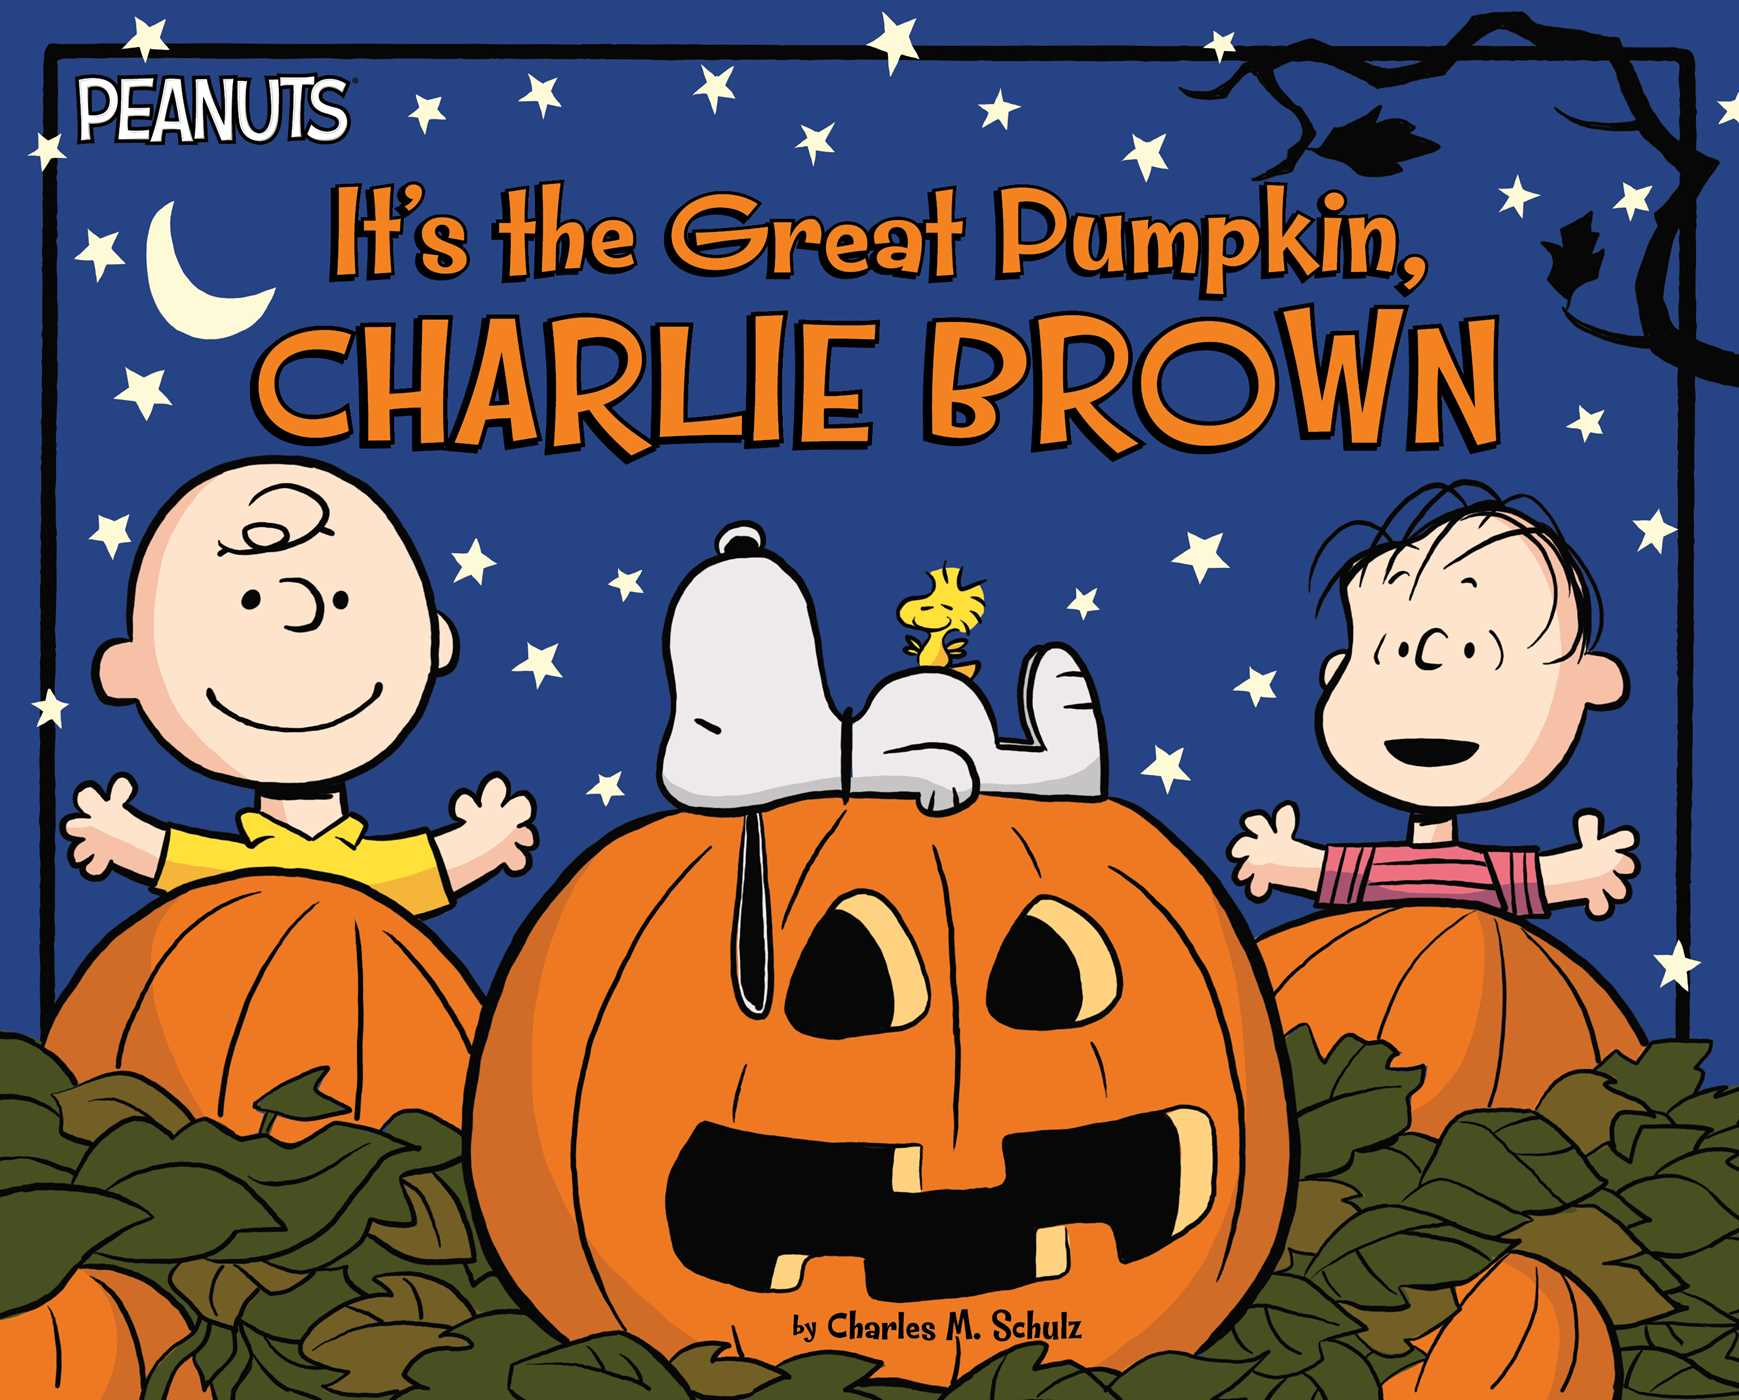 its-the-great-pumpkin-charlie-brown-peanuts-snoopy-halloween-artinsights